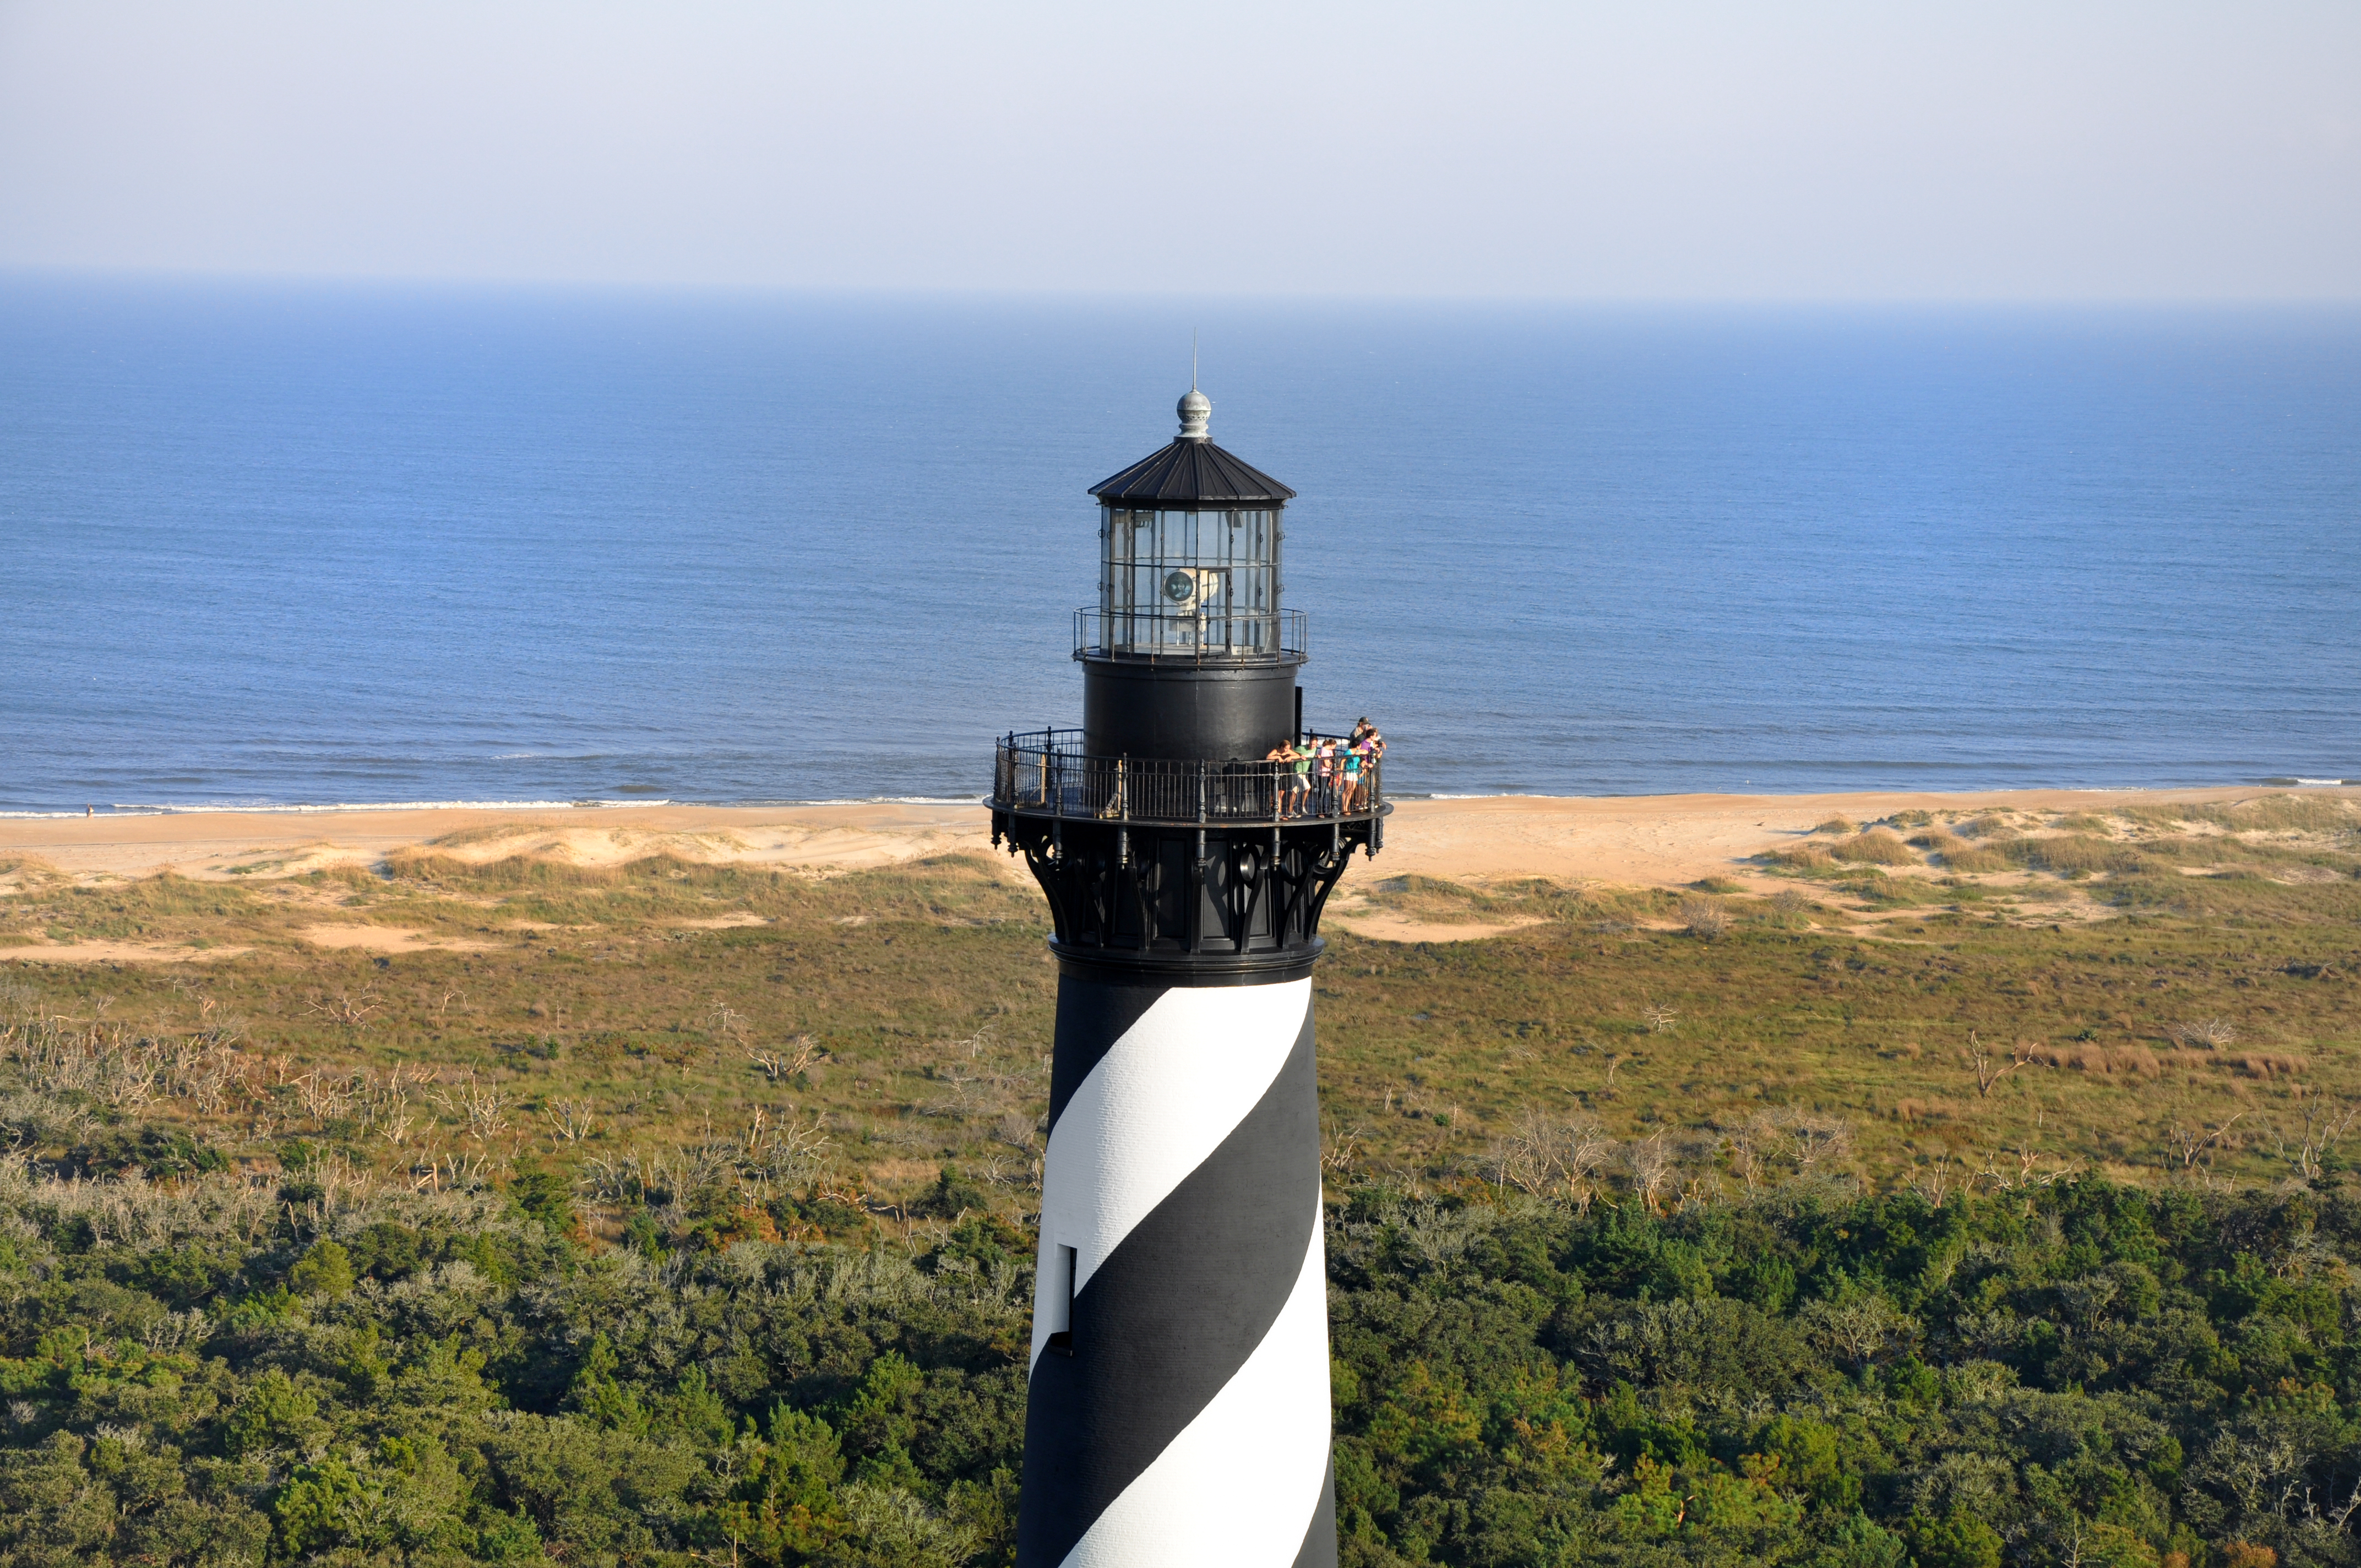 Hatteras Island The Outer Banks North Carolina Beach